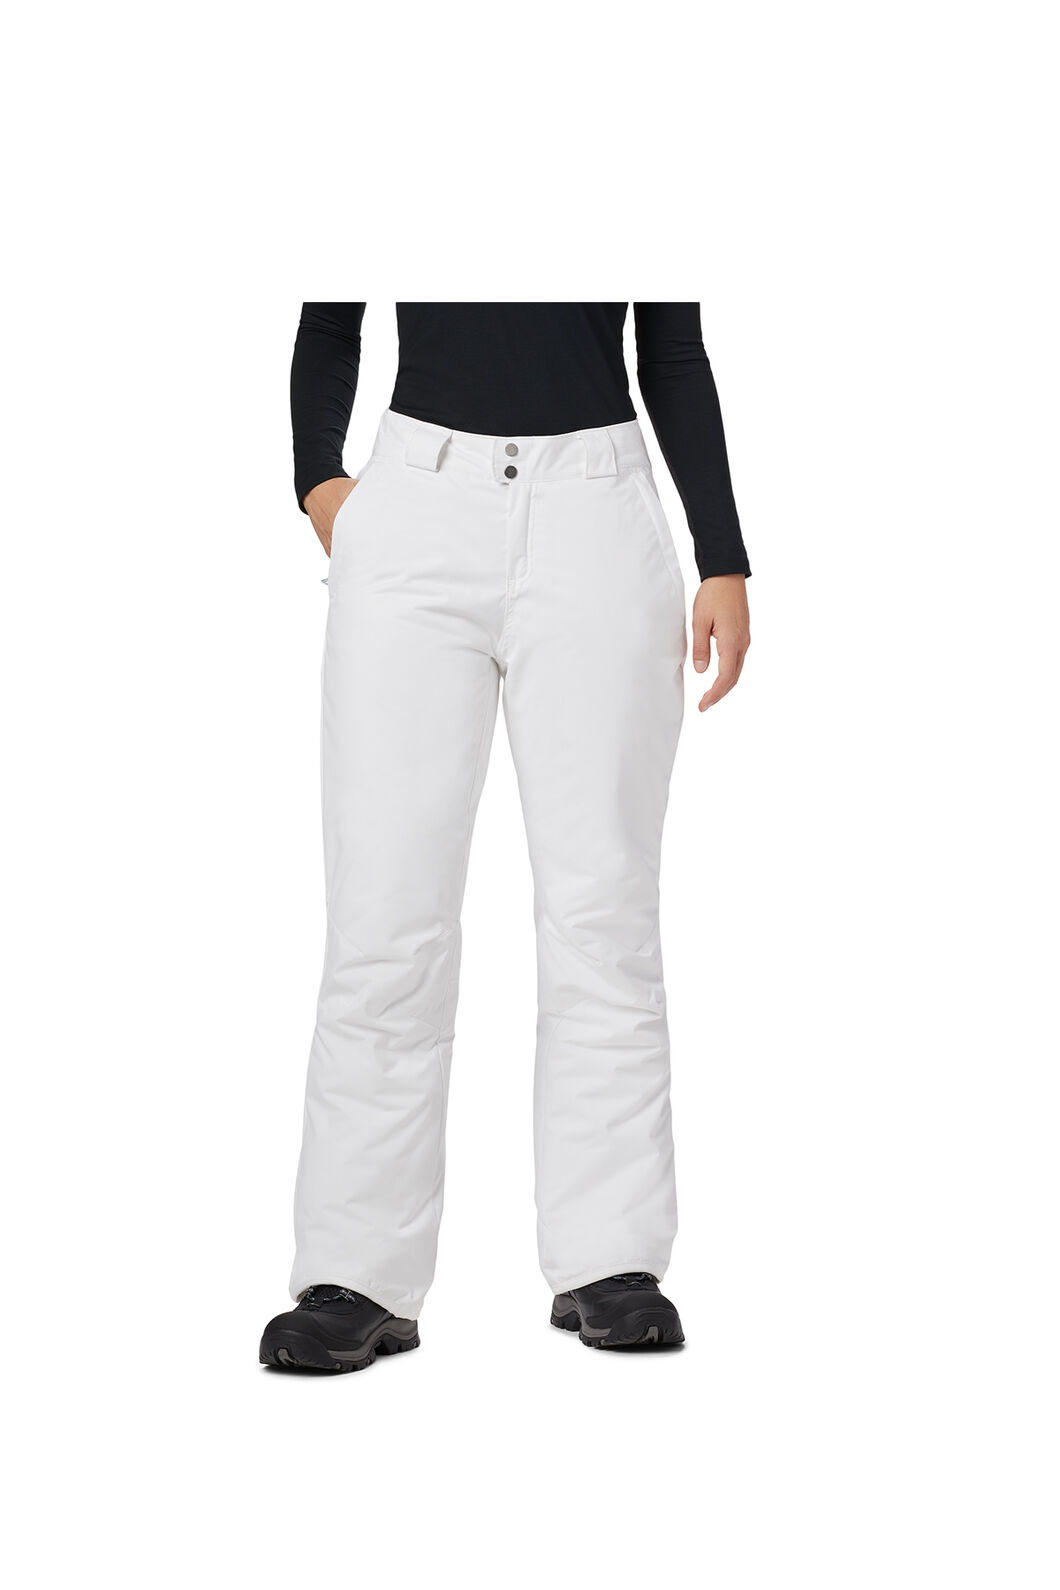 Columbia On the Slope II Pants — Women's, White, hi-res